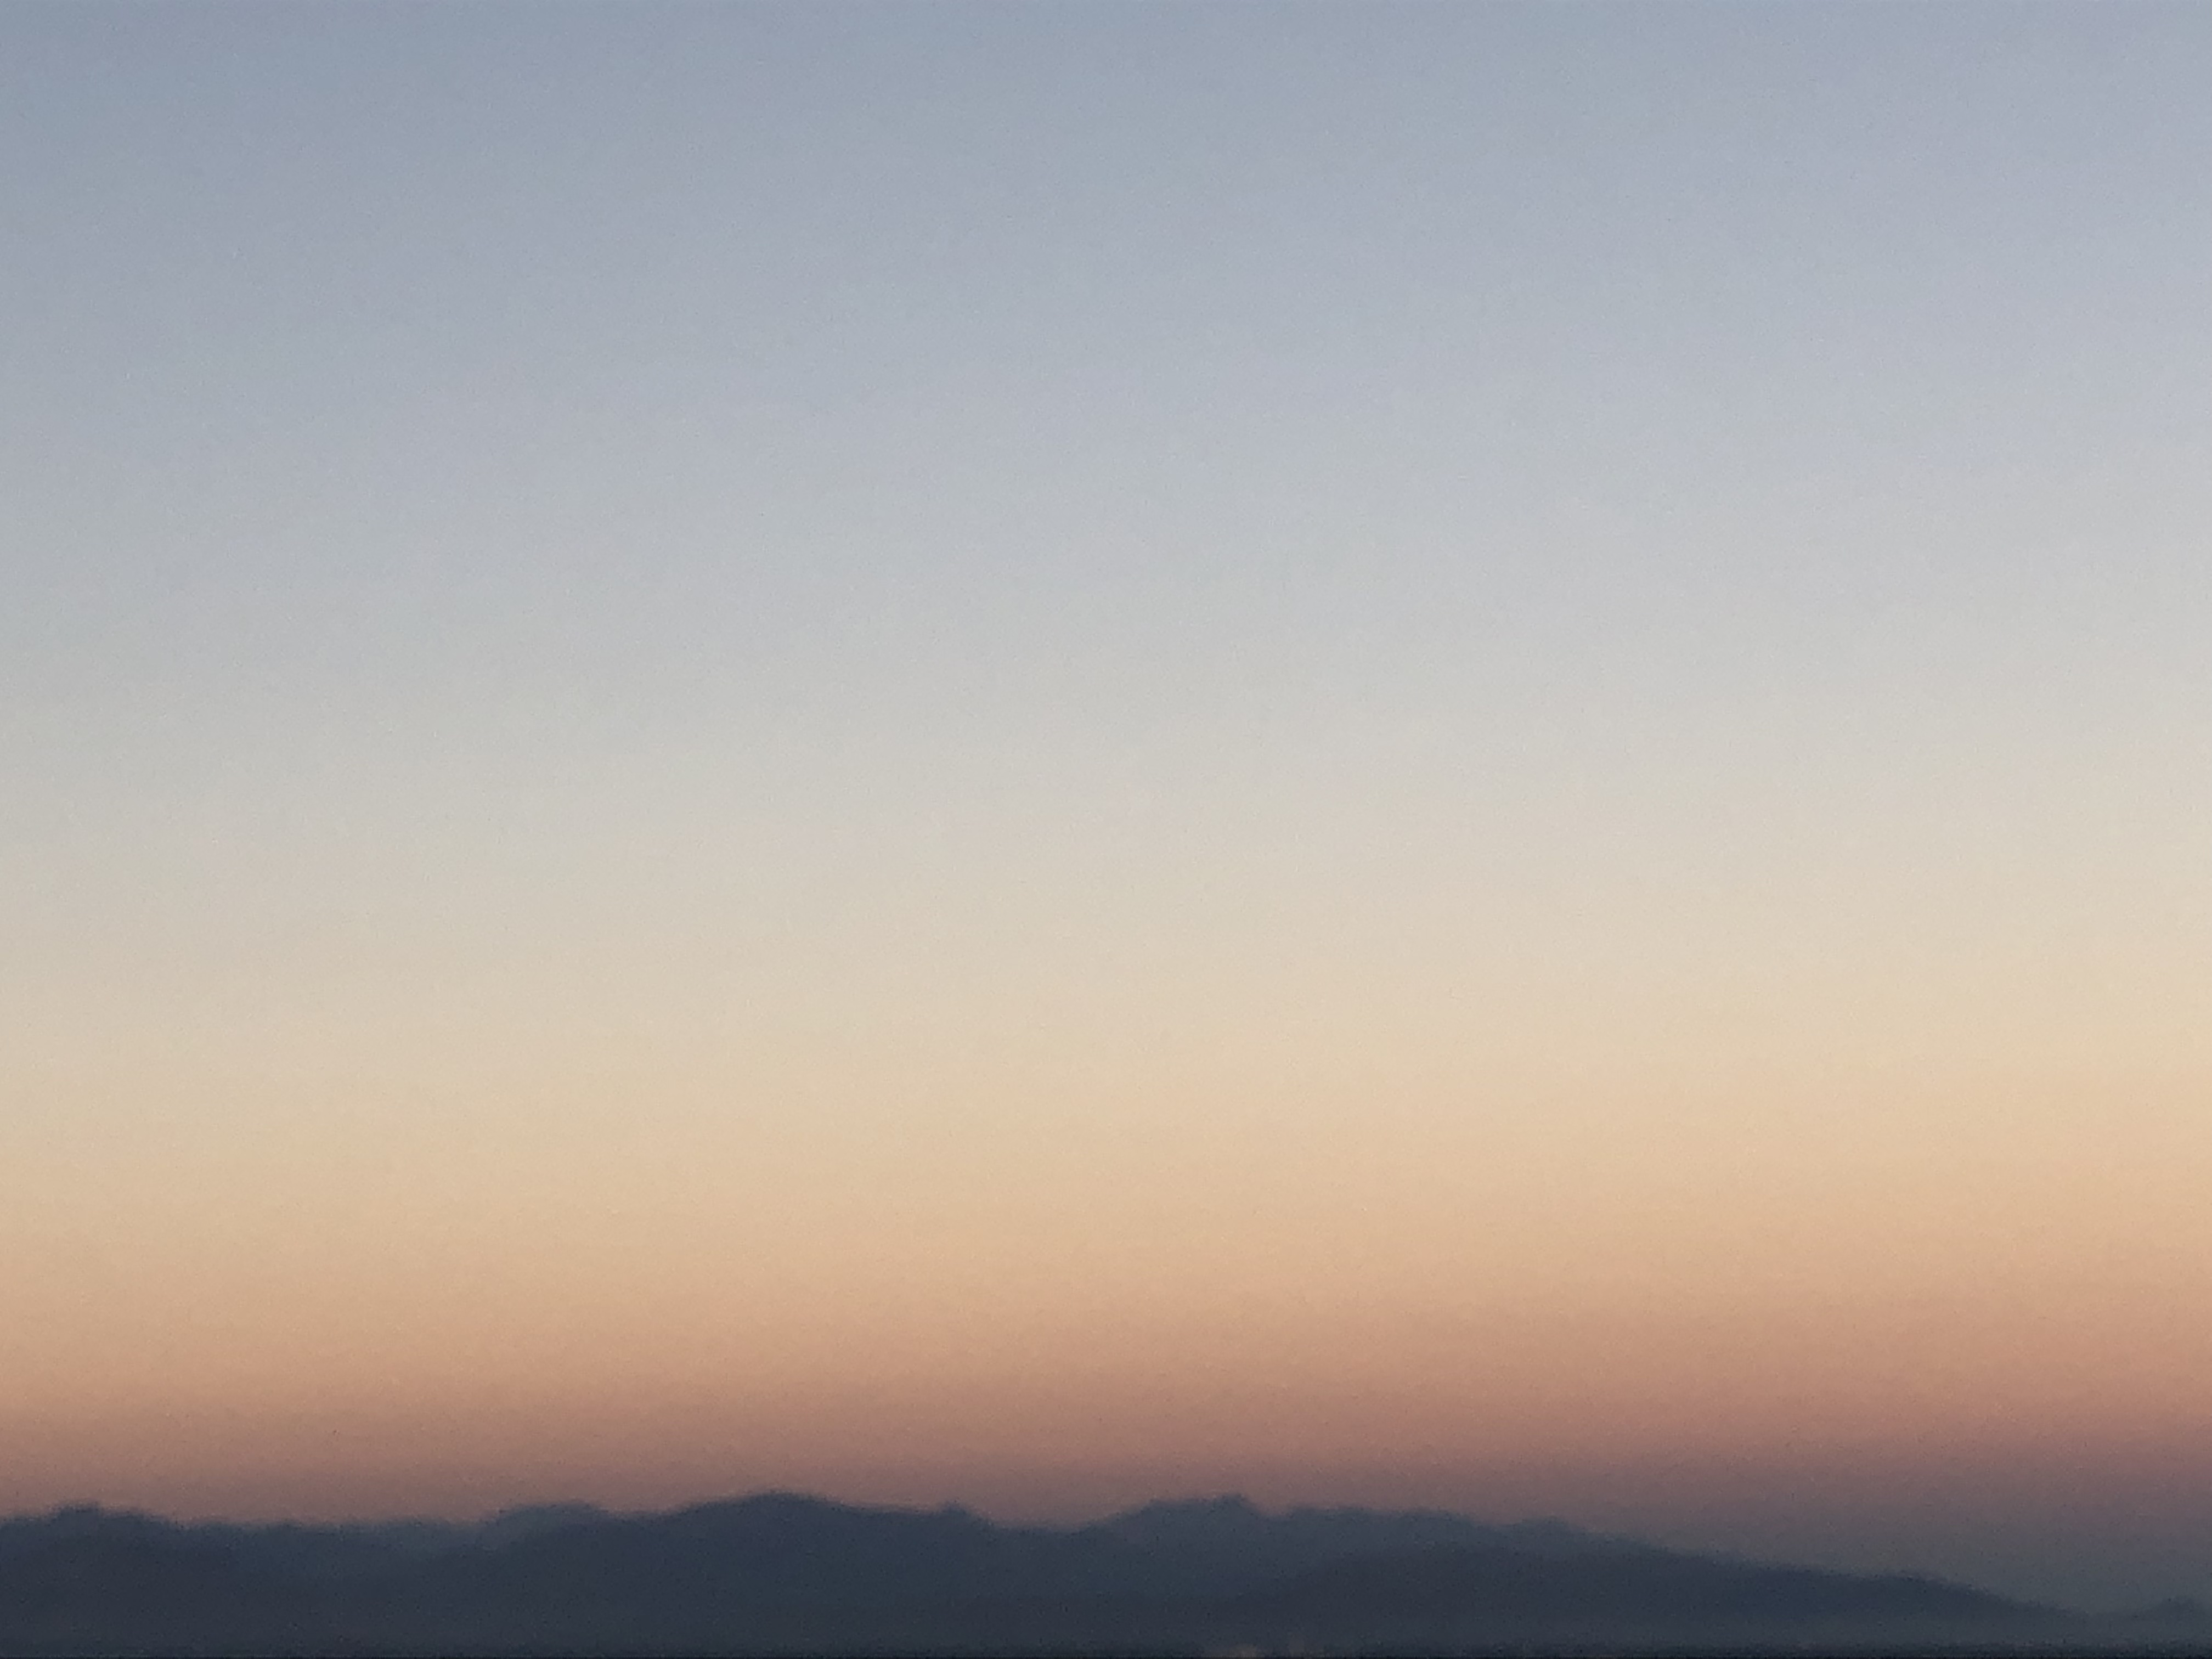 hazy sky with mountains in the distance